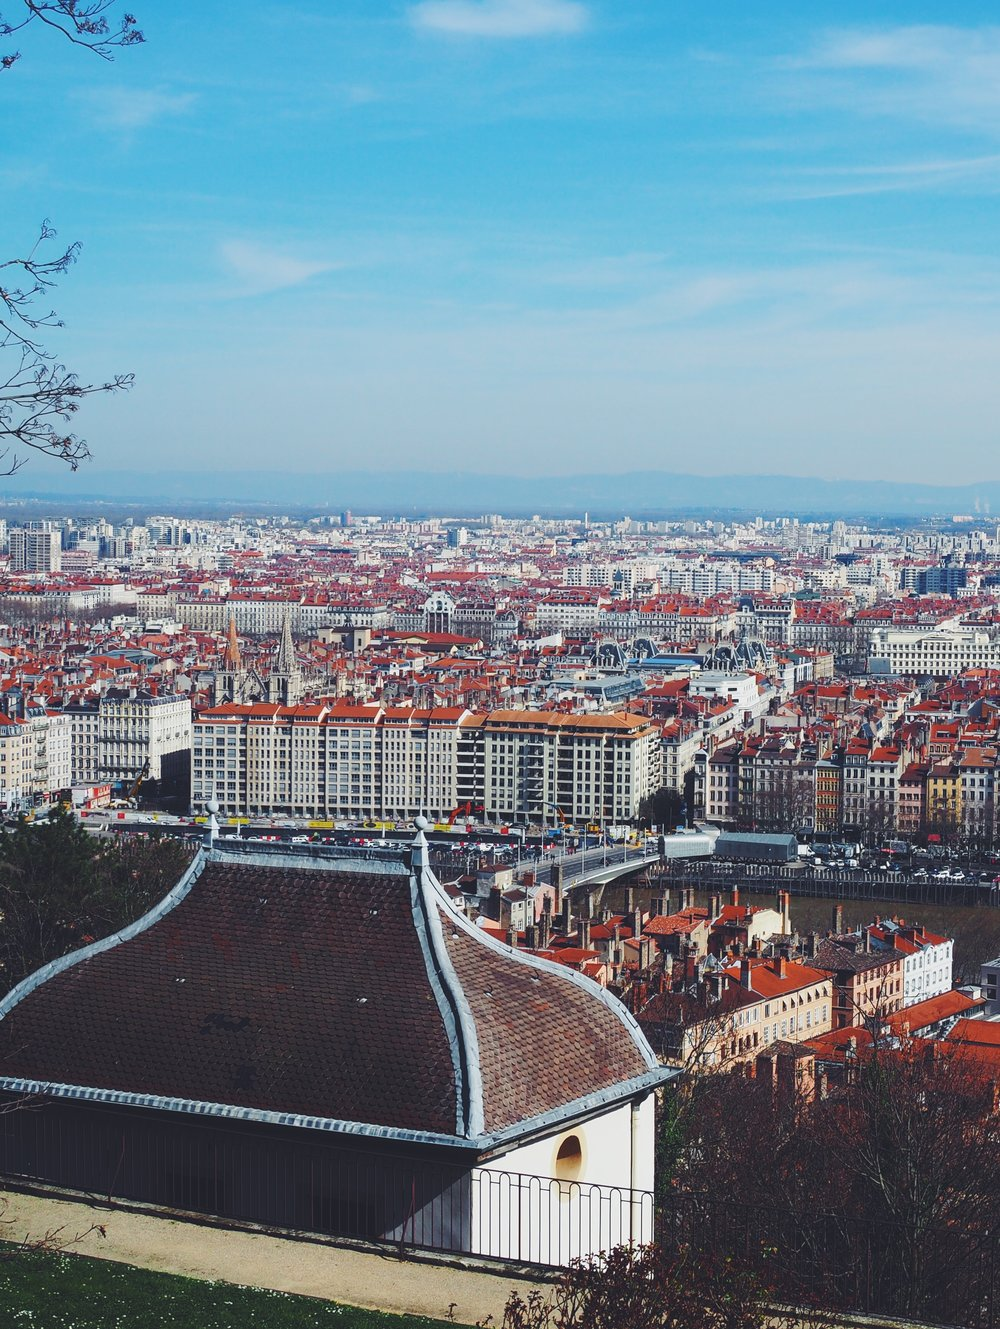 View of Lyon on the way up to the Basilica of Notre-Dame de Fourvière